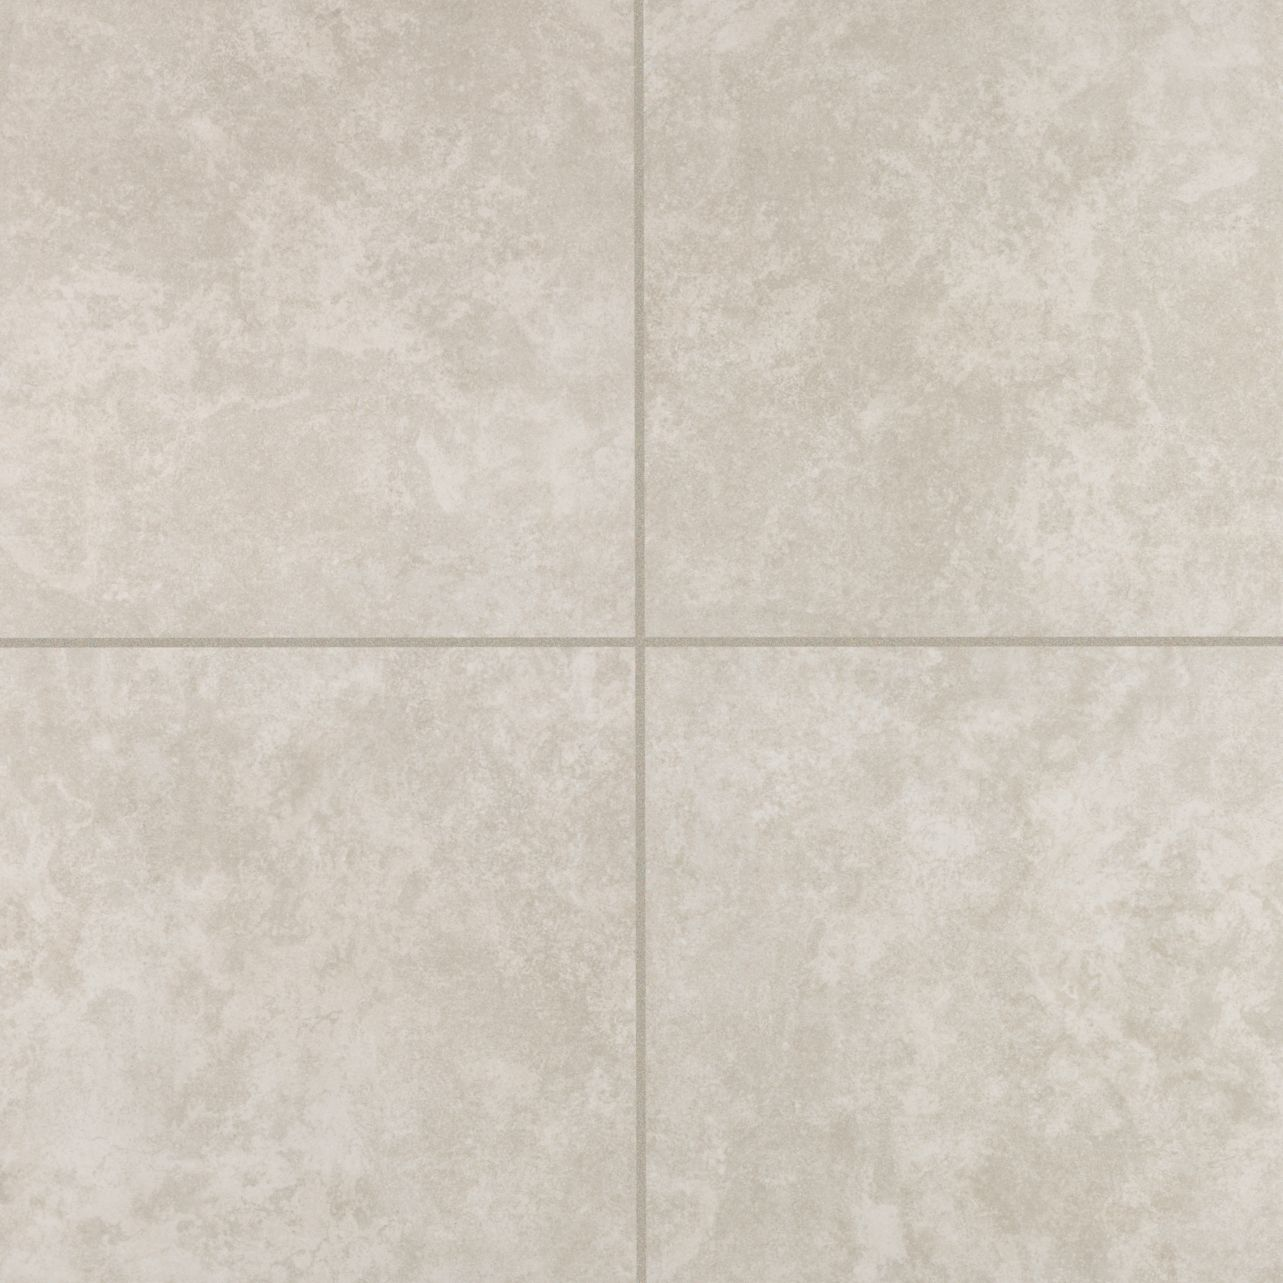 CeramicPorcelainTile AstelloWall T810F-AN33 Cream